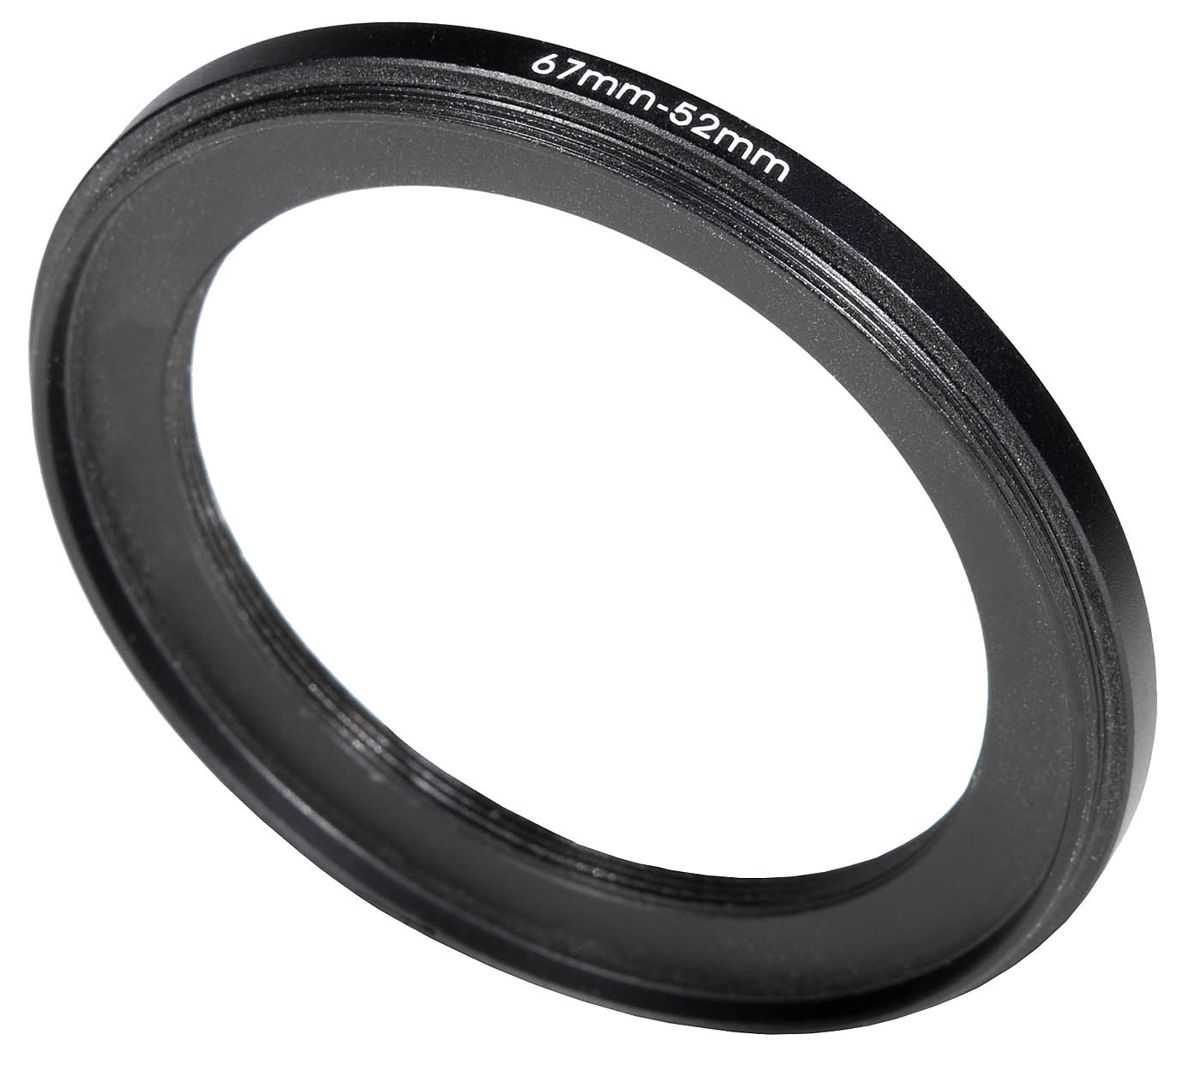 Ringadapter 67 - 52 mm